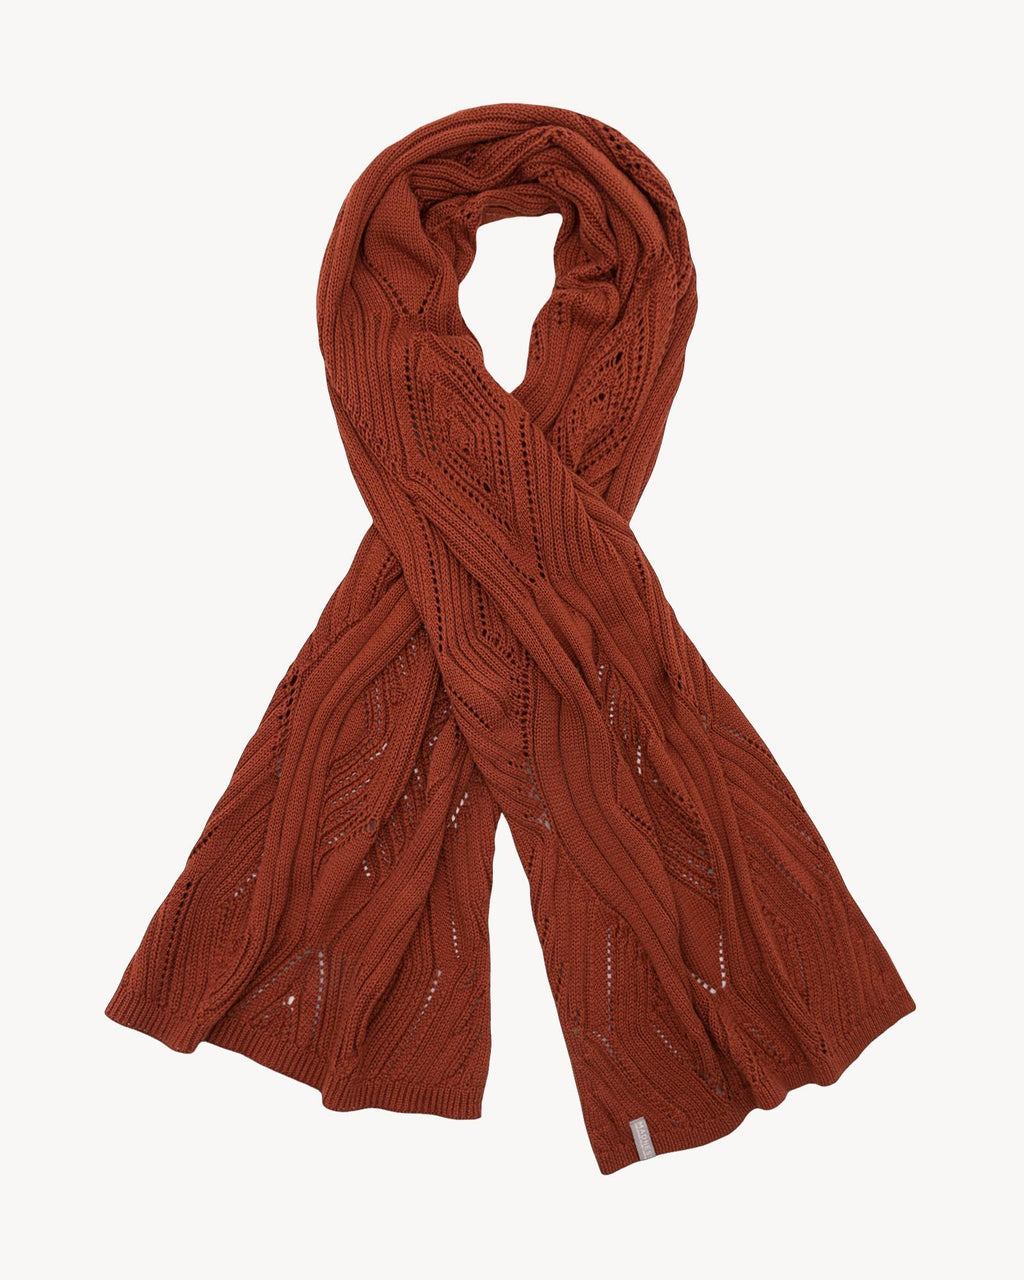 variant_1 | EN Women knitted scarf brown | DE Damen Strickschal braun